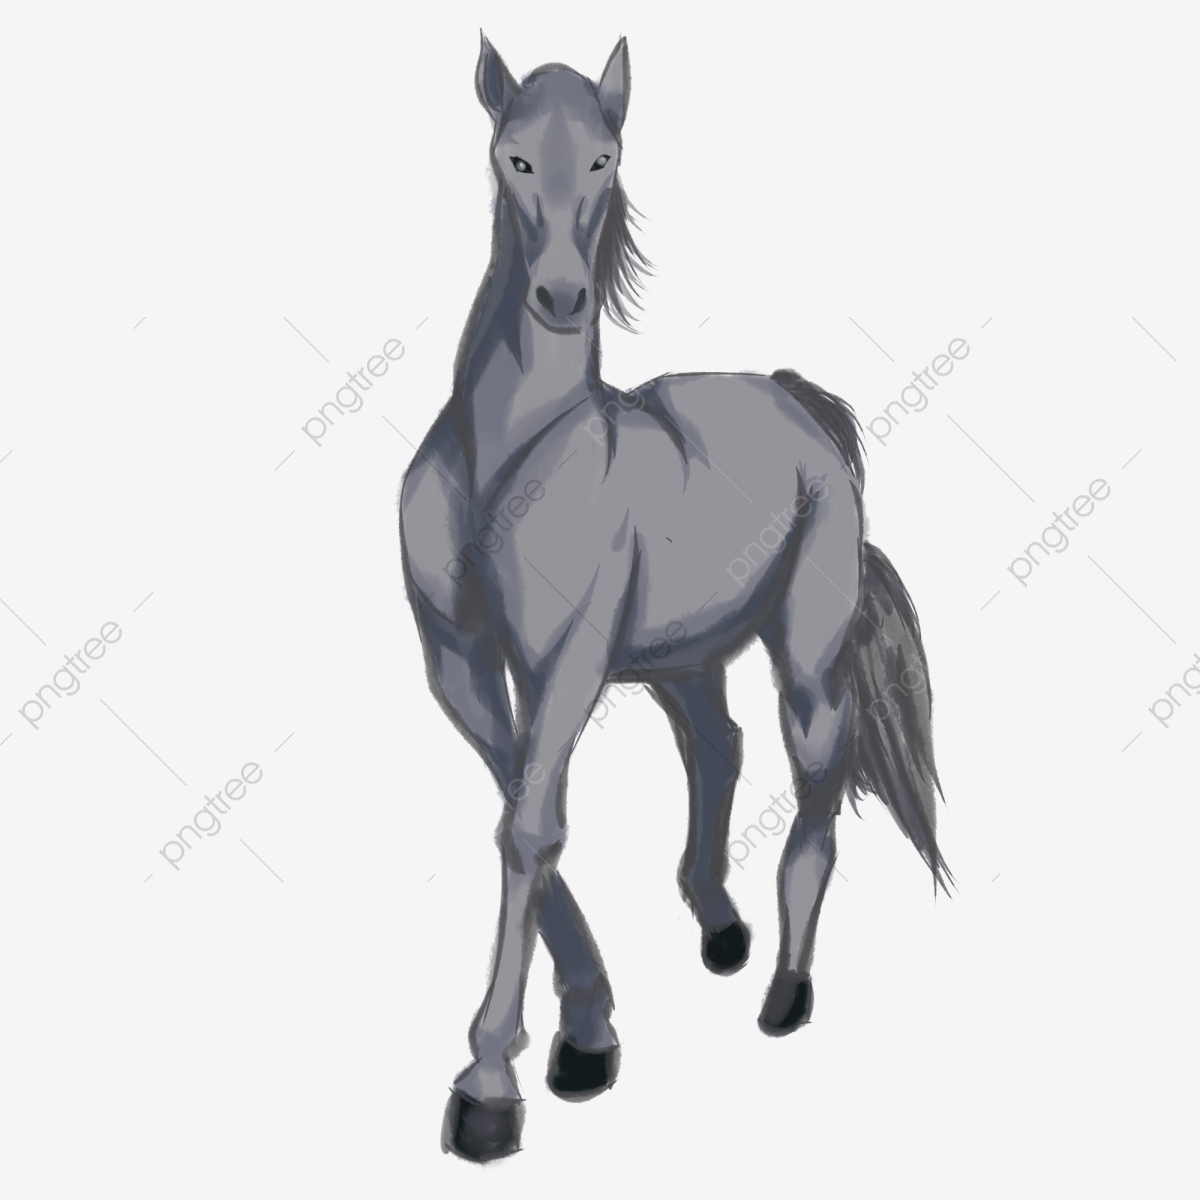 Cartoon Horse Cartoon Animal Illustration Brown Horse Running Horse Horse Clipart Running Horse Race Png Transparent Clipart Image And Psd File For Free Download